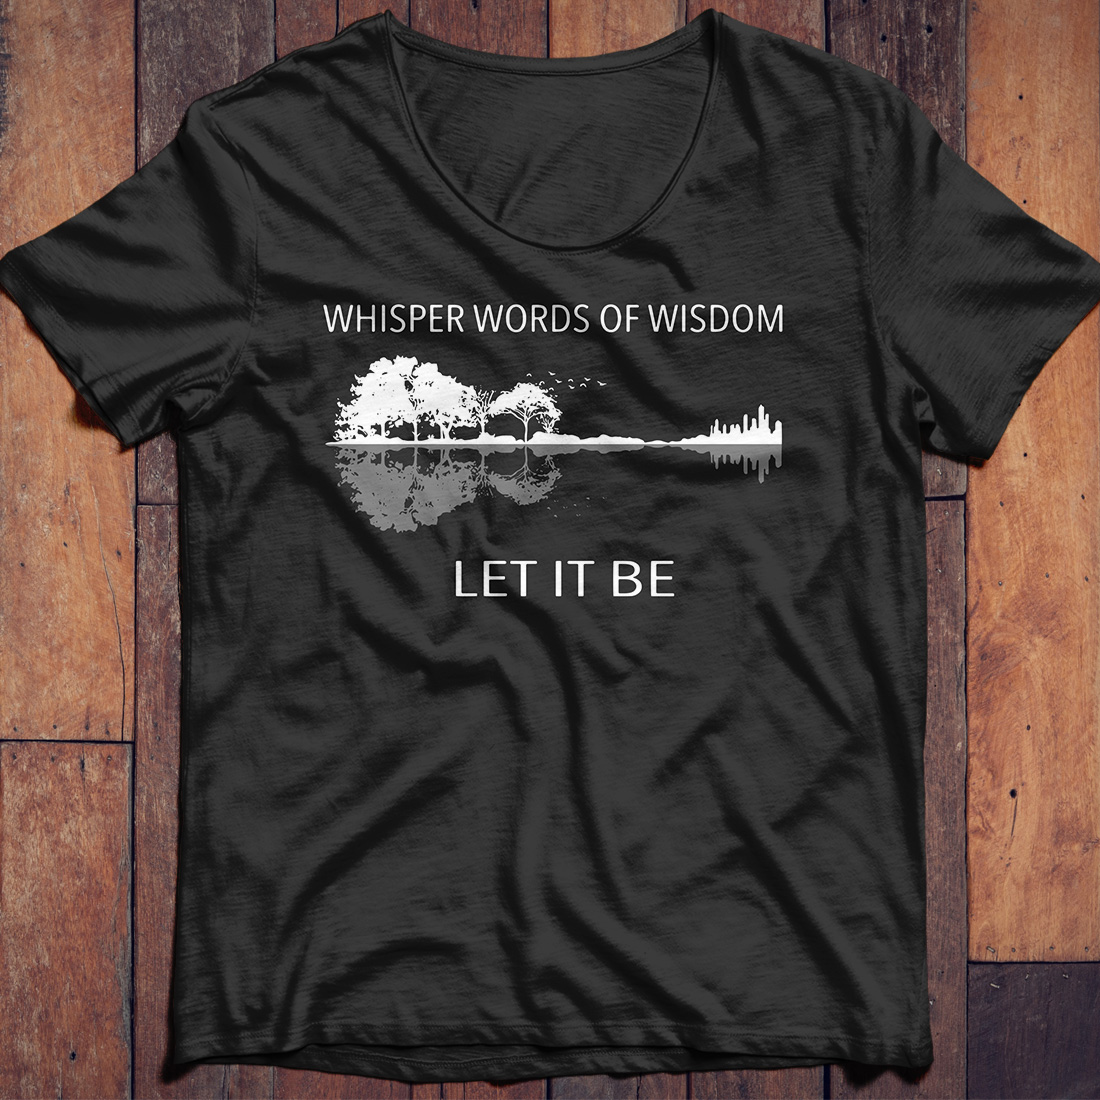 Nature Guitar Whisper Words of Wisdom let it be shirt